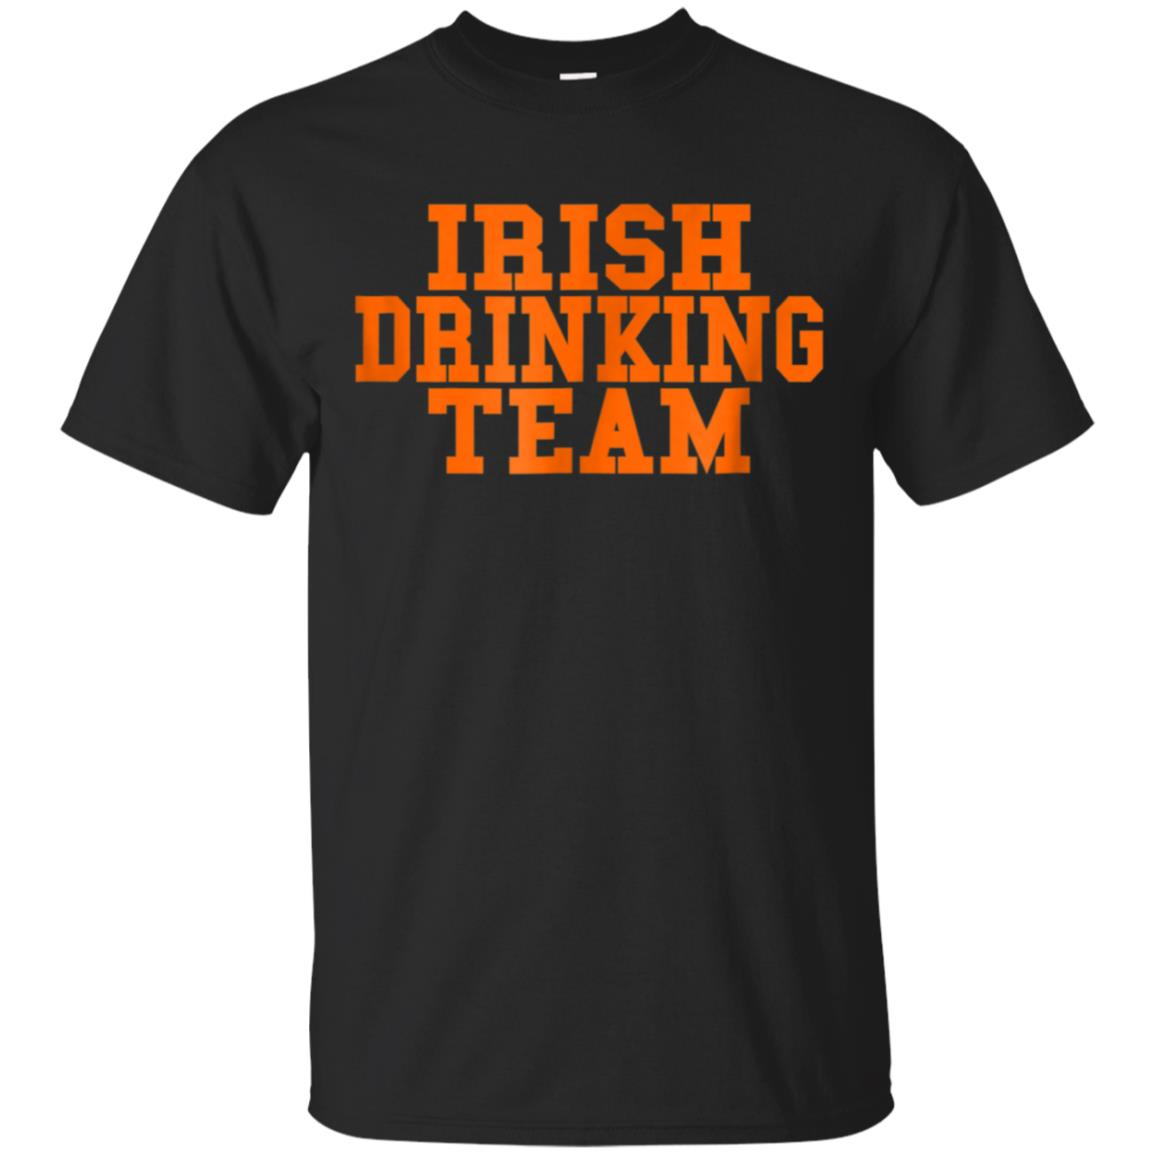 Big Texas Irish Drinking Team T-Shirt 99promocode